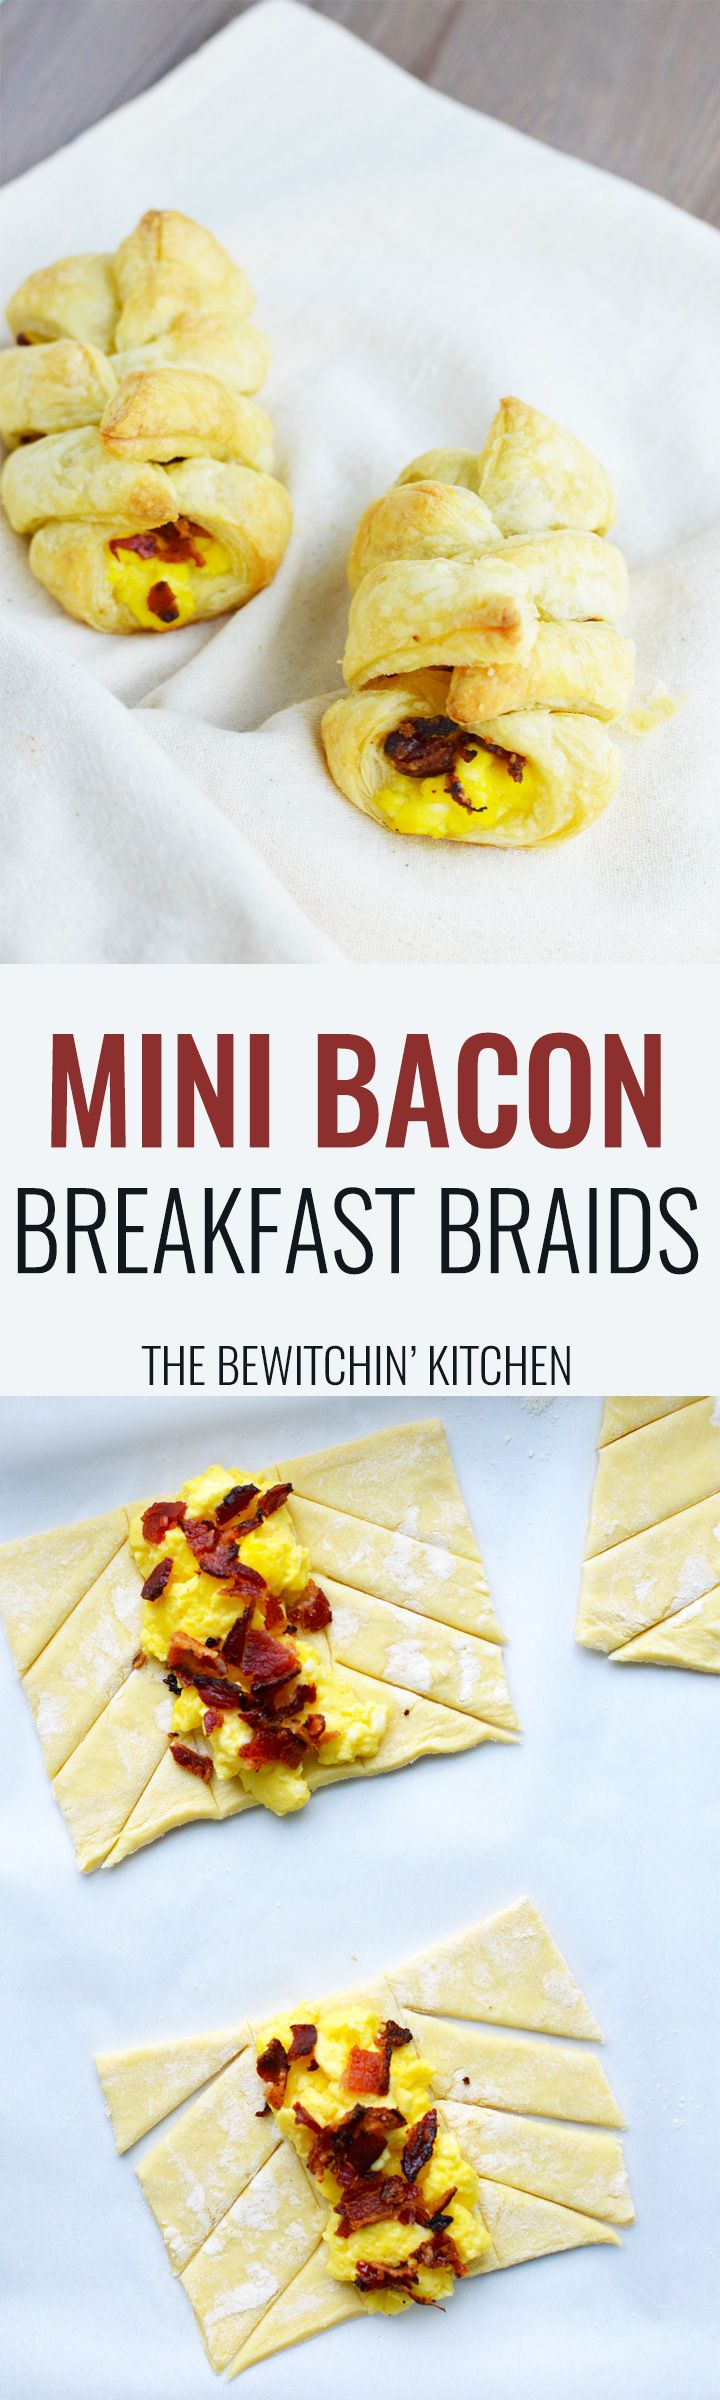 Mini Bacon Breakfast Braids - this egg and bacon recipe is a brunch hit. Using puff pastry, bacon and eggs plus any fill ins you want. This also makes a great baby shower recipe or can be used as a bridal shower recipe. | thebewitchinkitchen.com